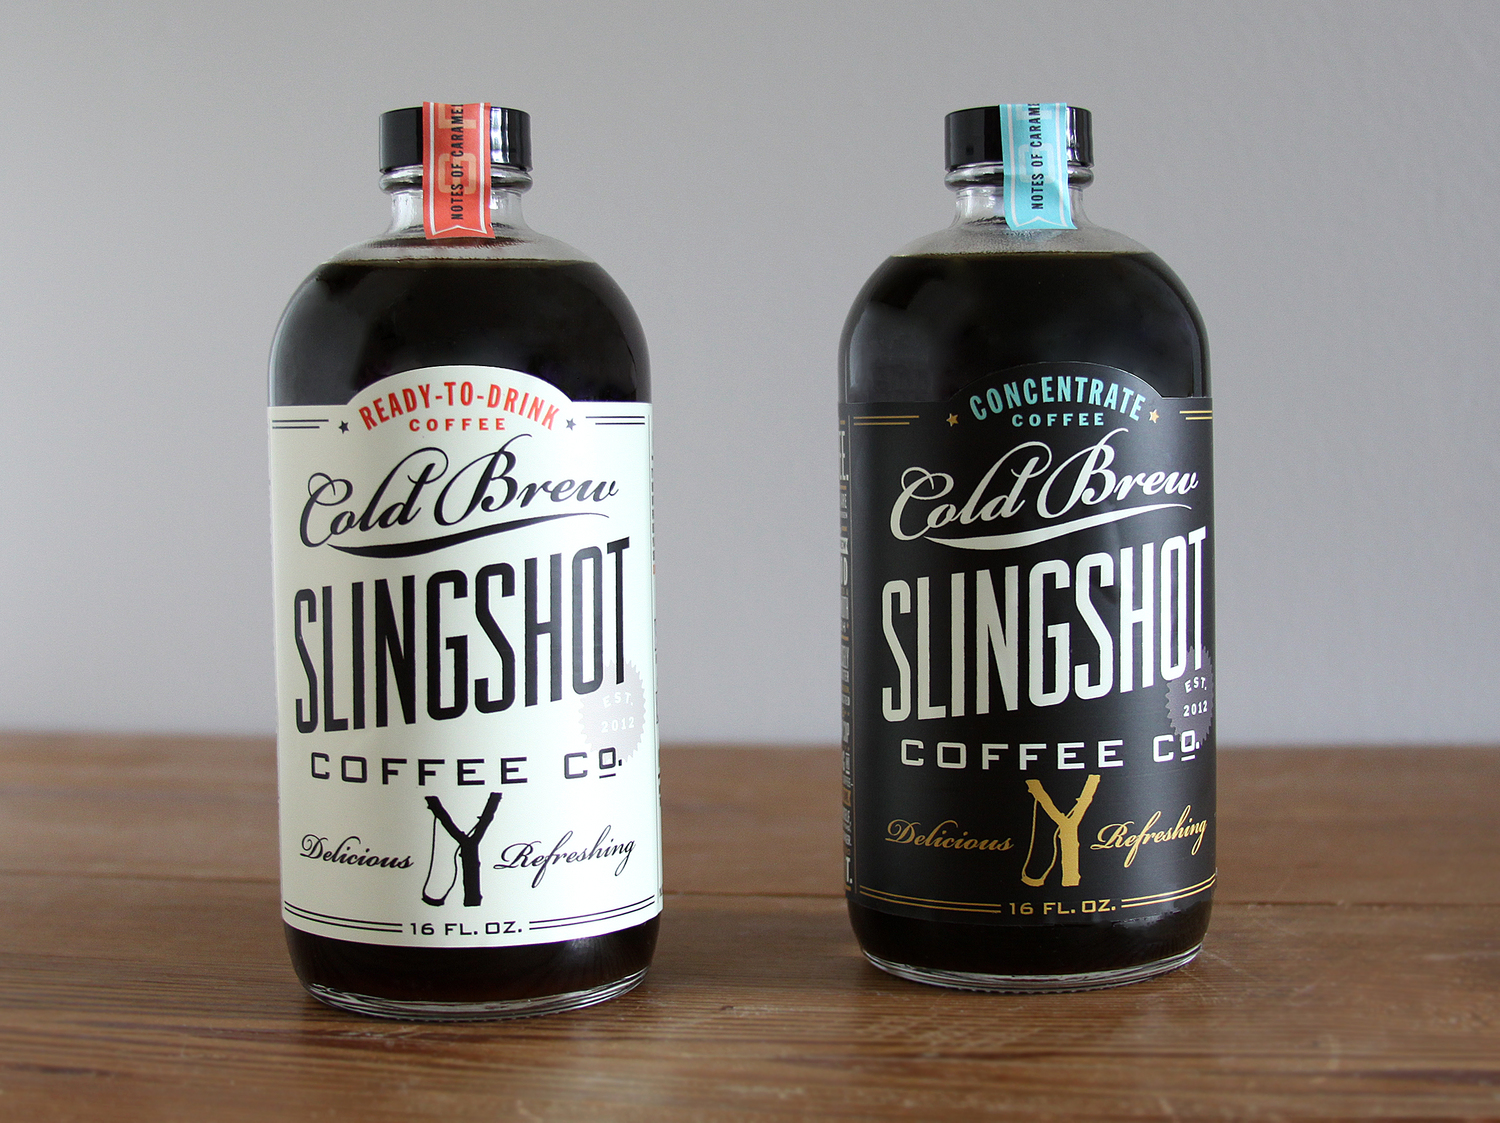 Design by Good South / Slingshot Coffee Co. - Cold Brew Package Design